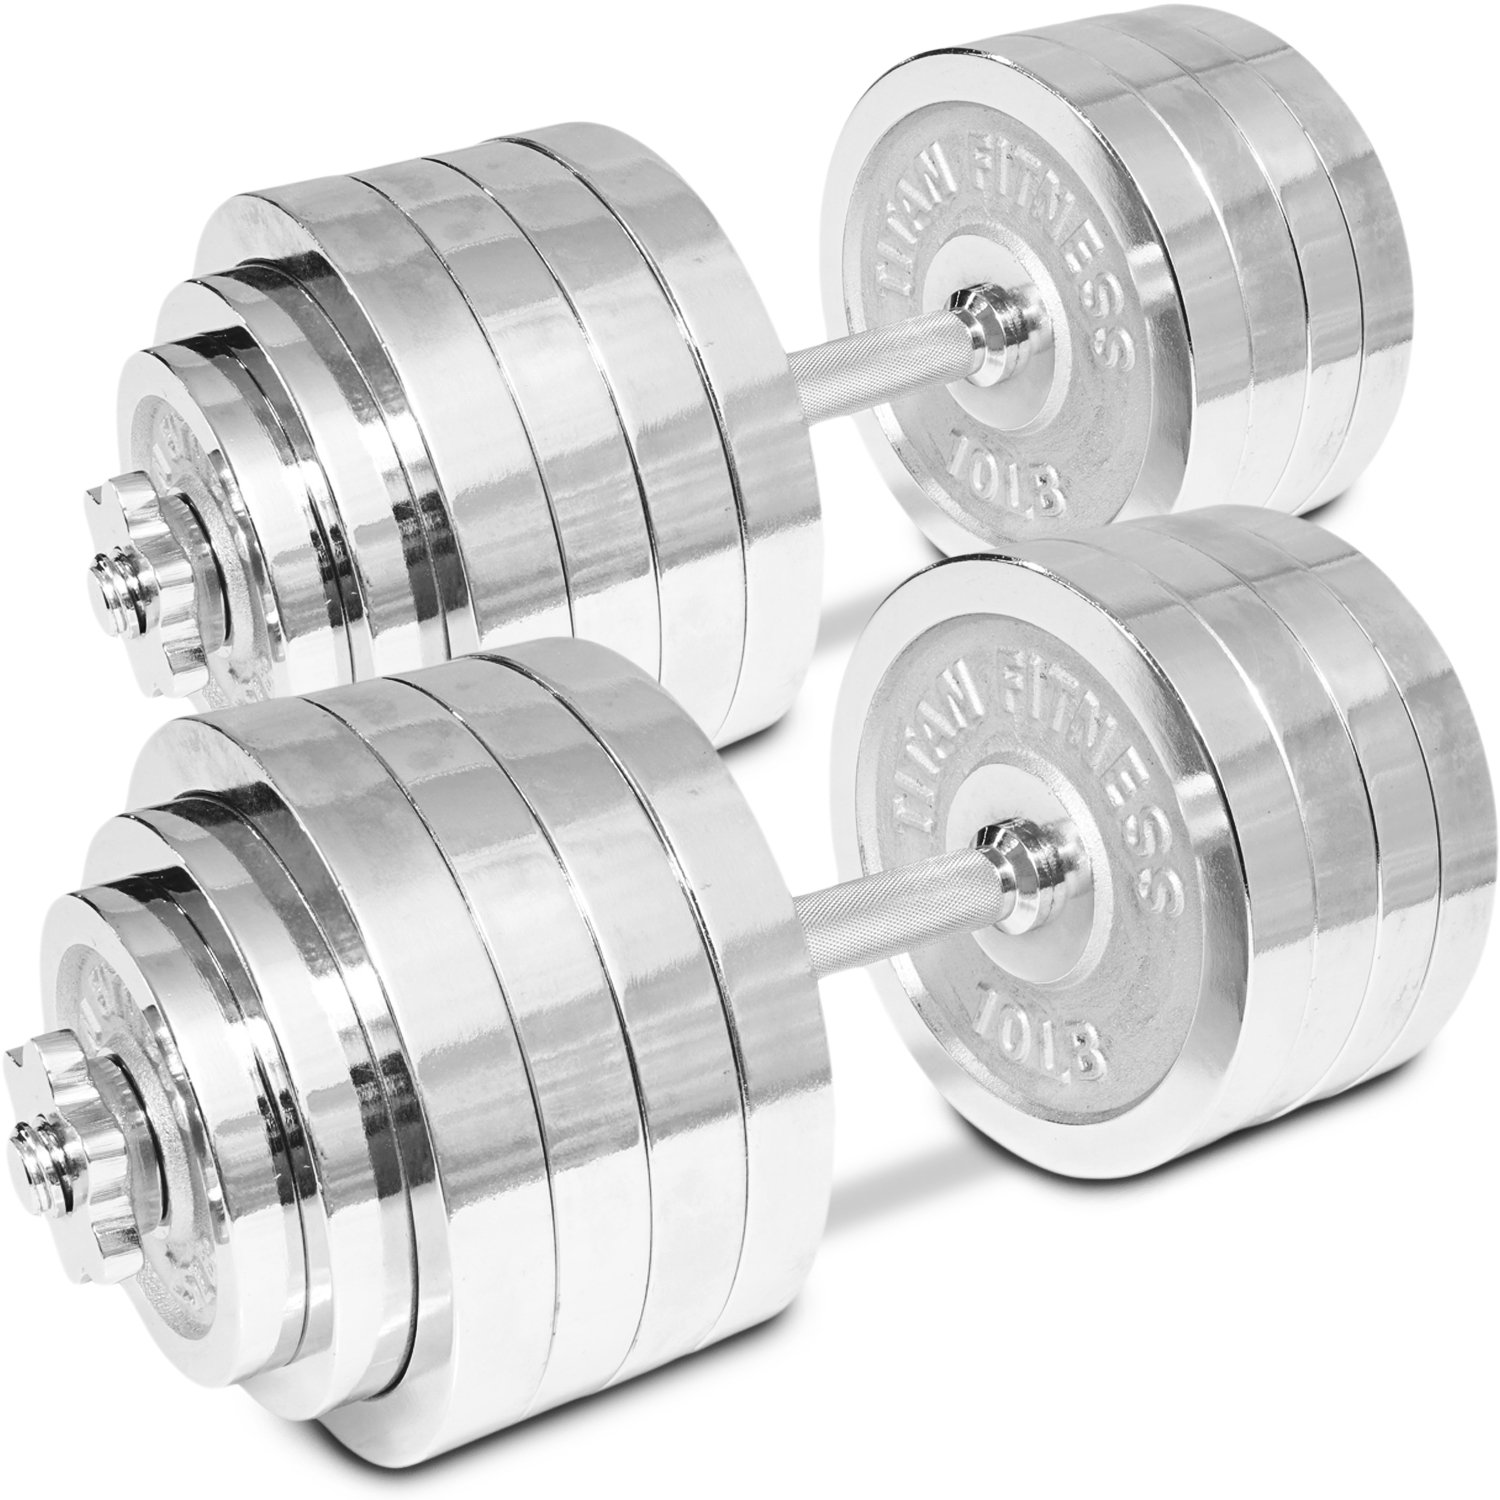 Titan Adjustable Weight Chrome Dumbbells Set 200 lbs Pair 100 lbs Dumbbell x 2pc by Titan Fitness